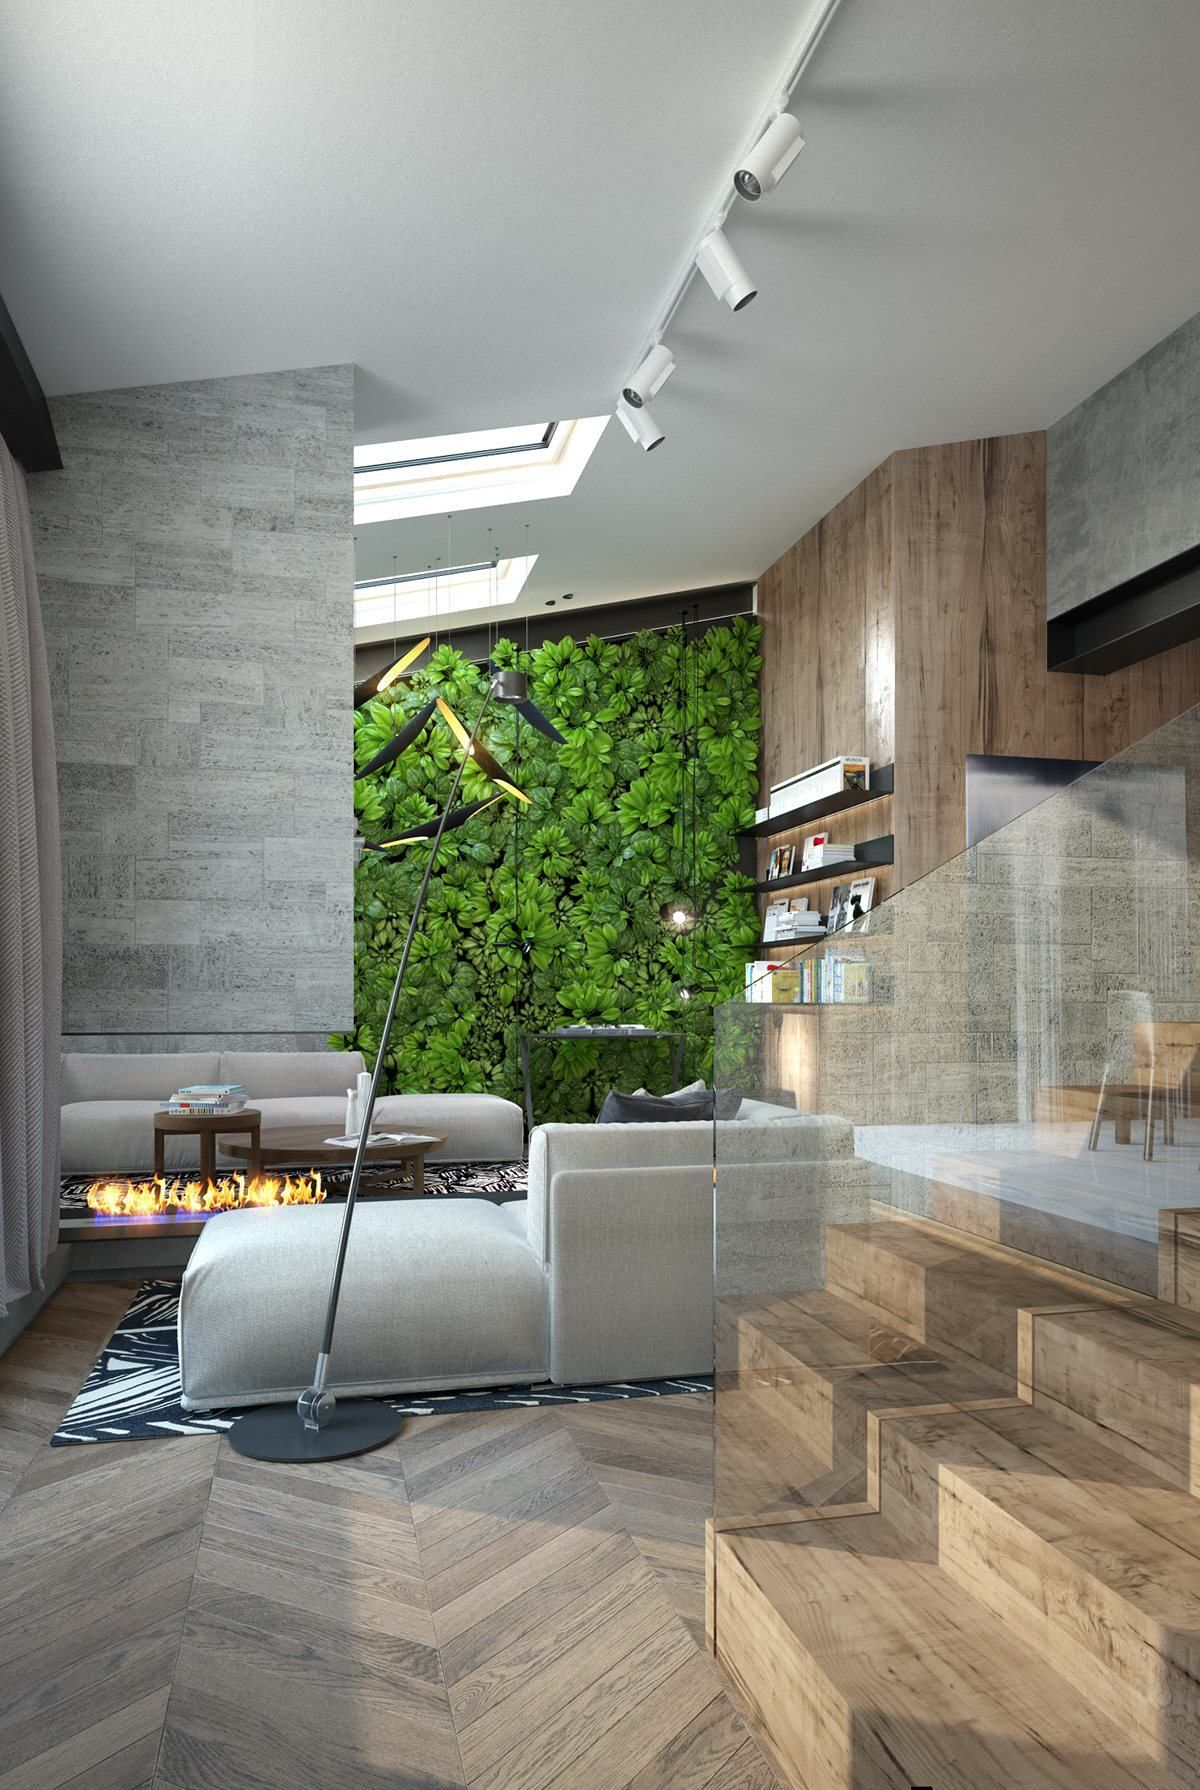 Homes With Inspiring Wall Treatments And Designer Lighting Lighting Design Interior Home Lighting Design Interior Design